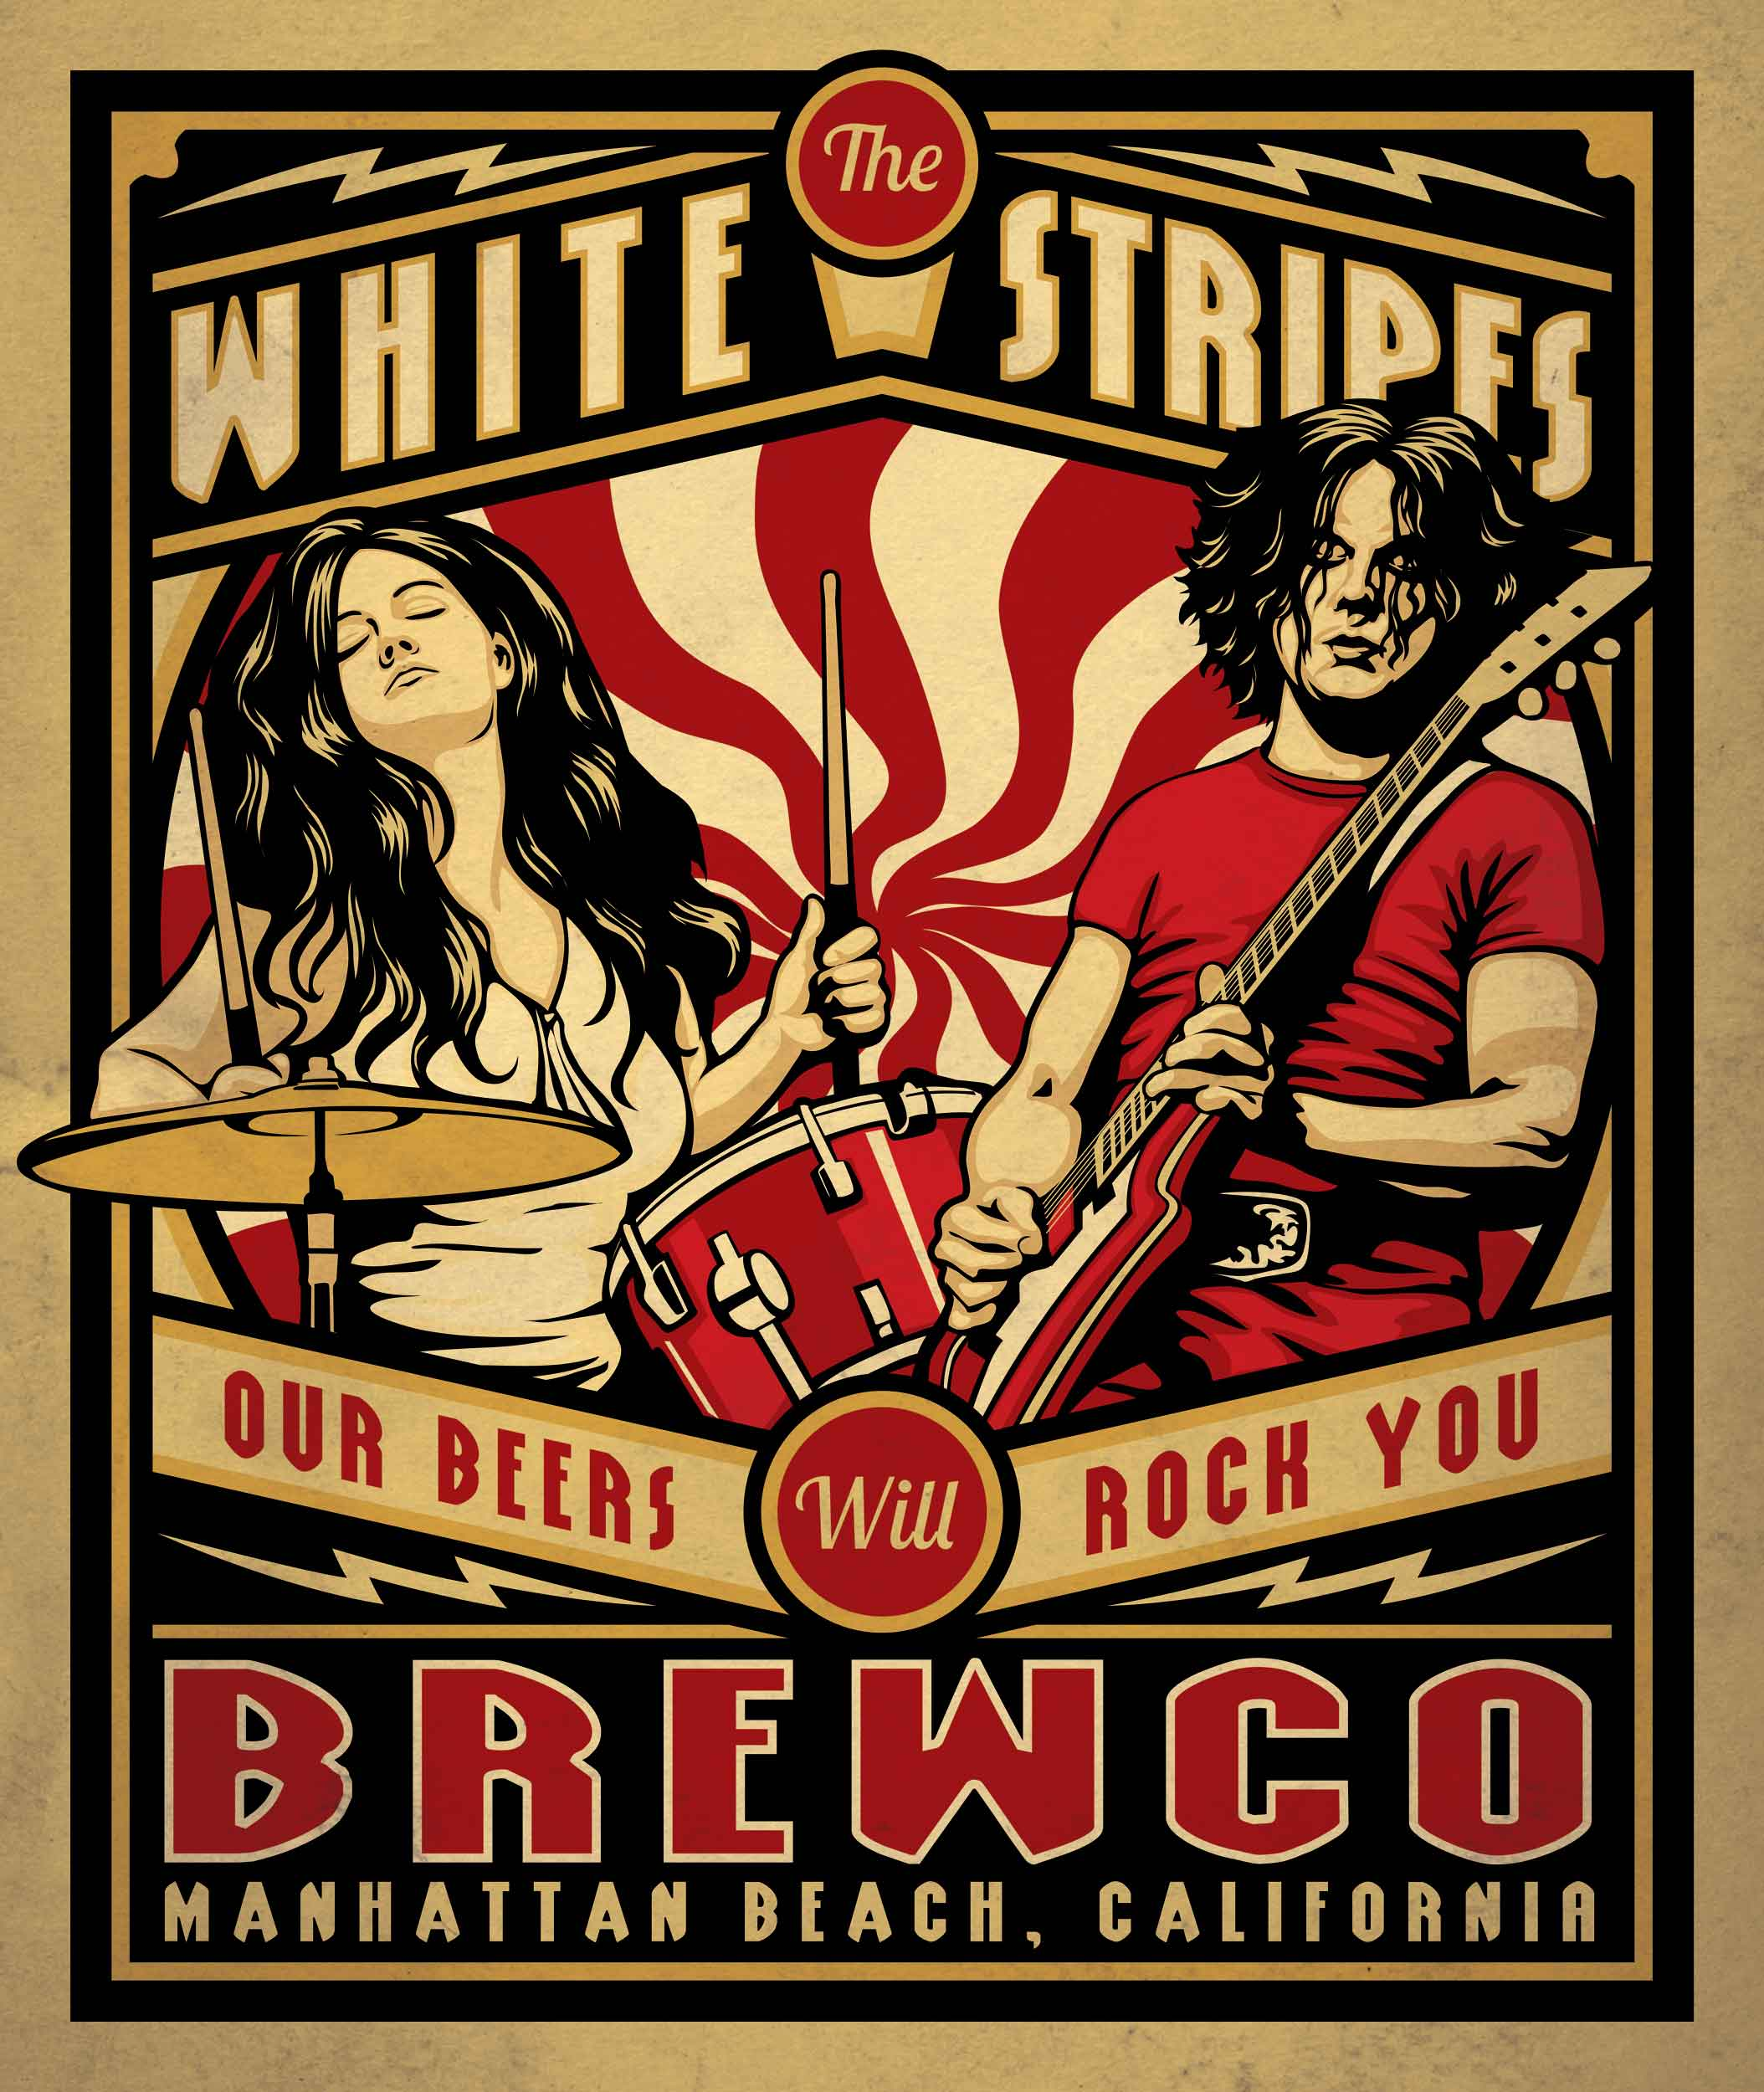 Brewco White Stripes poster